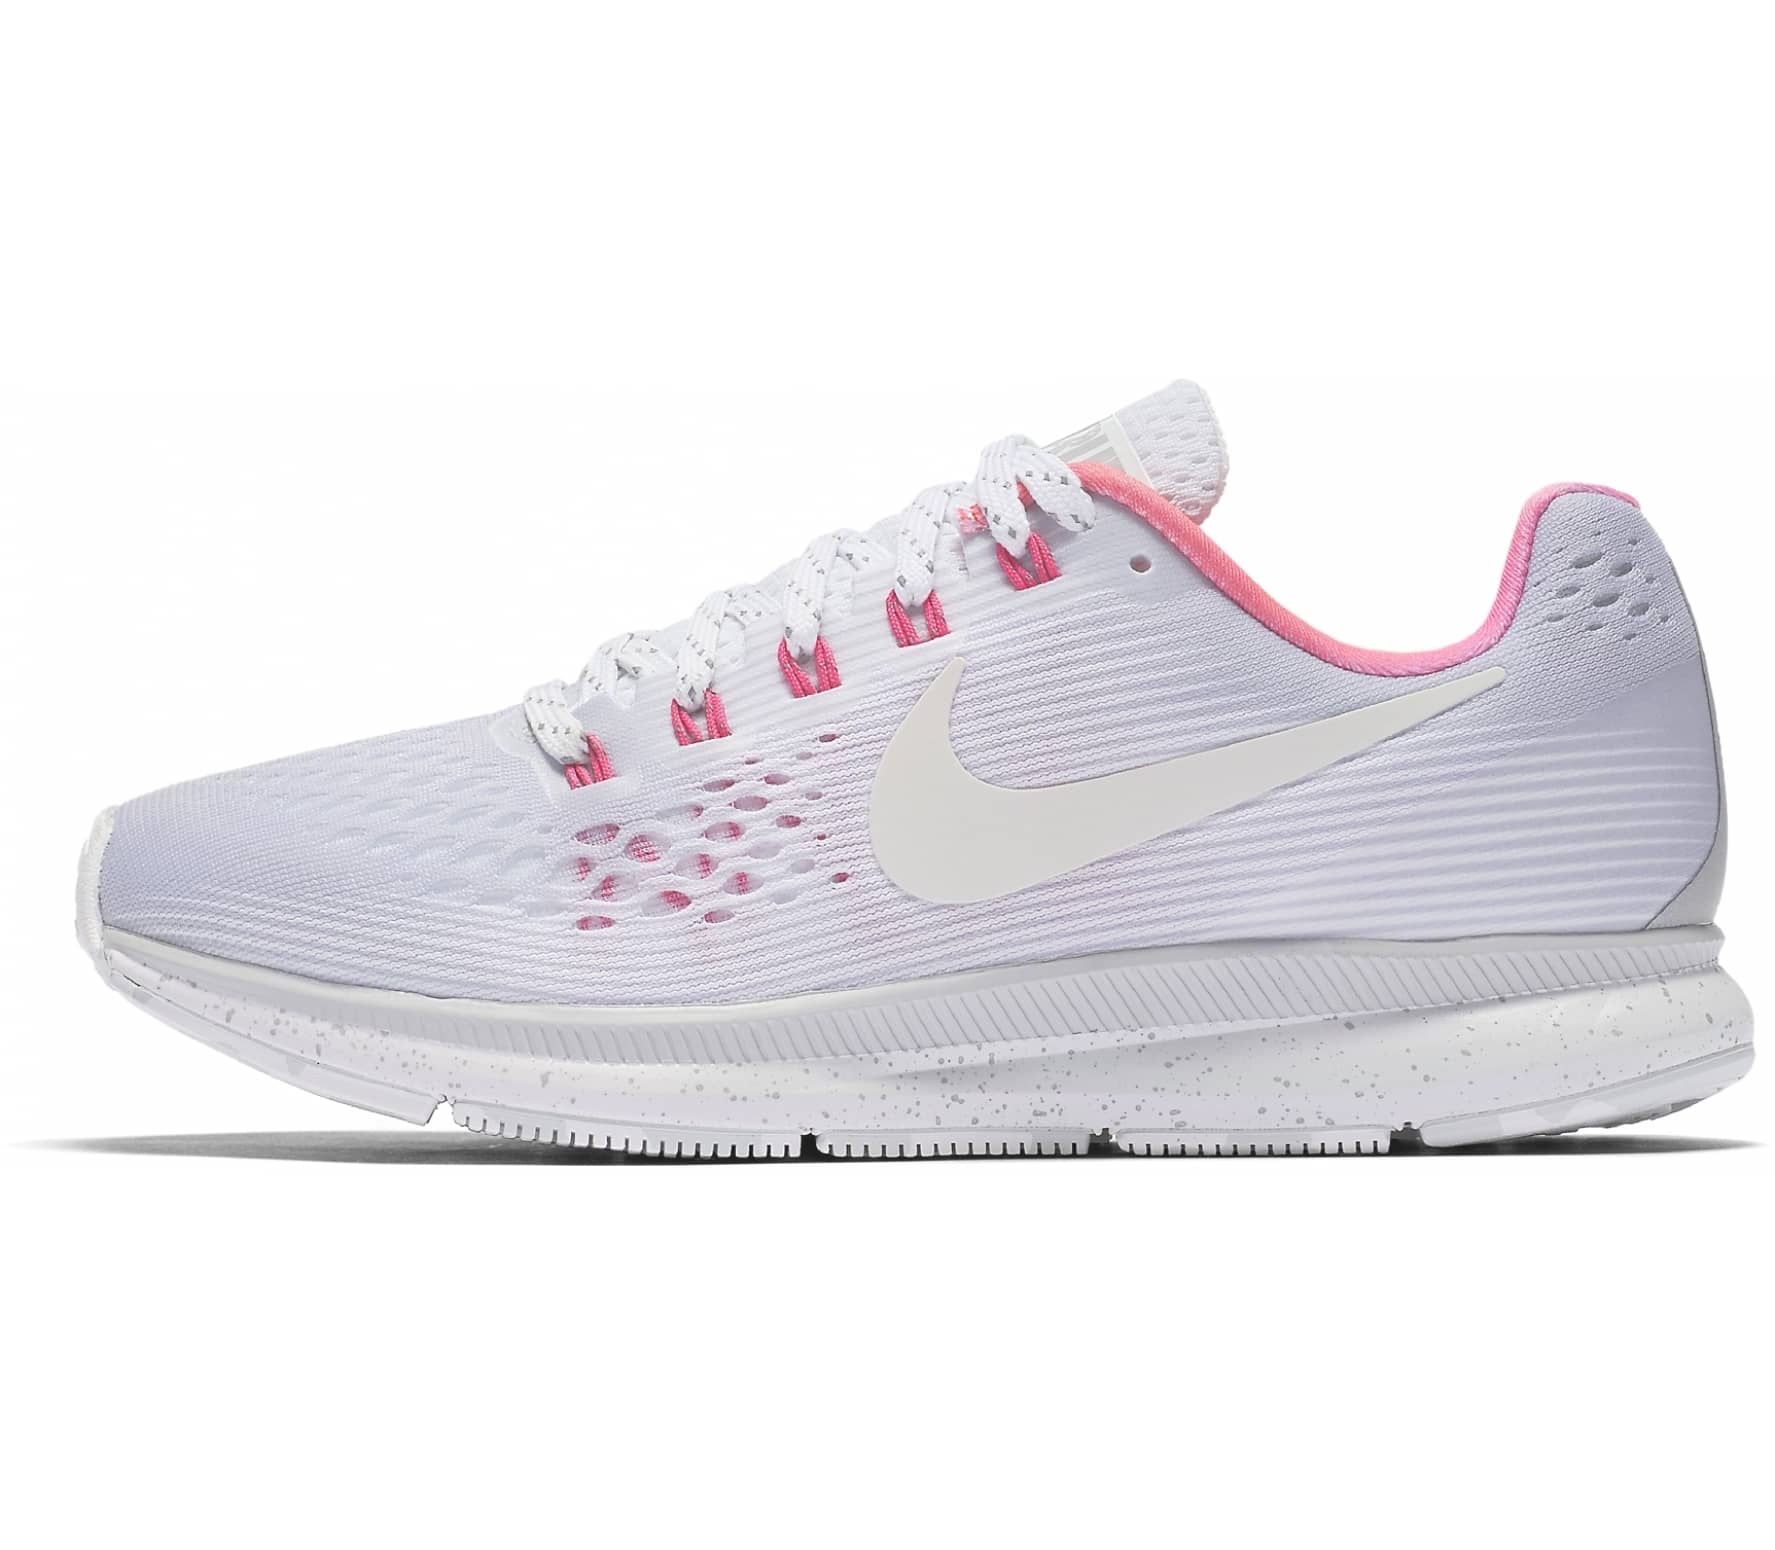 separation shoes 36171 bf0b0 Nike - Air Zoom Pegasus 34 Betrue Damen Runningschuh (hellgrau)